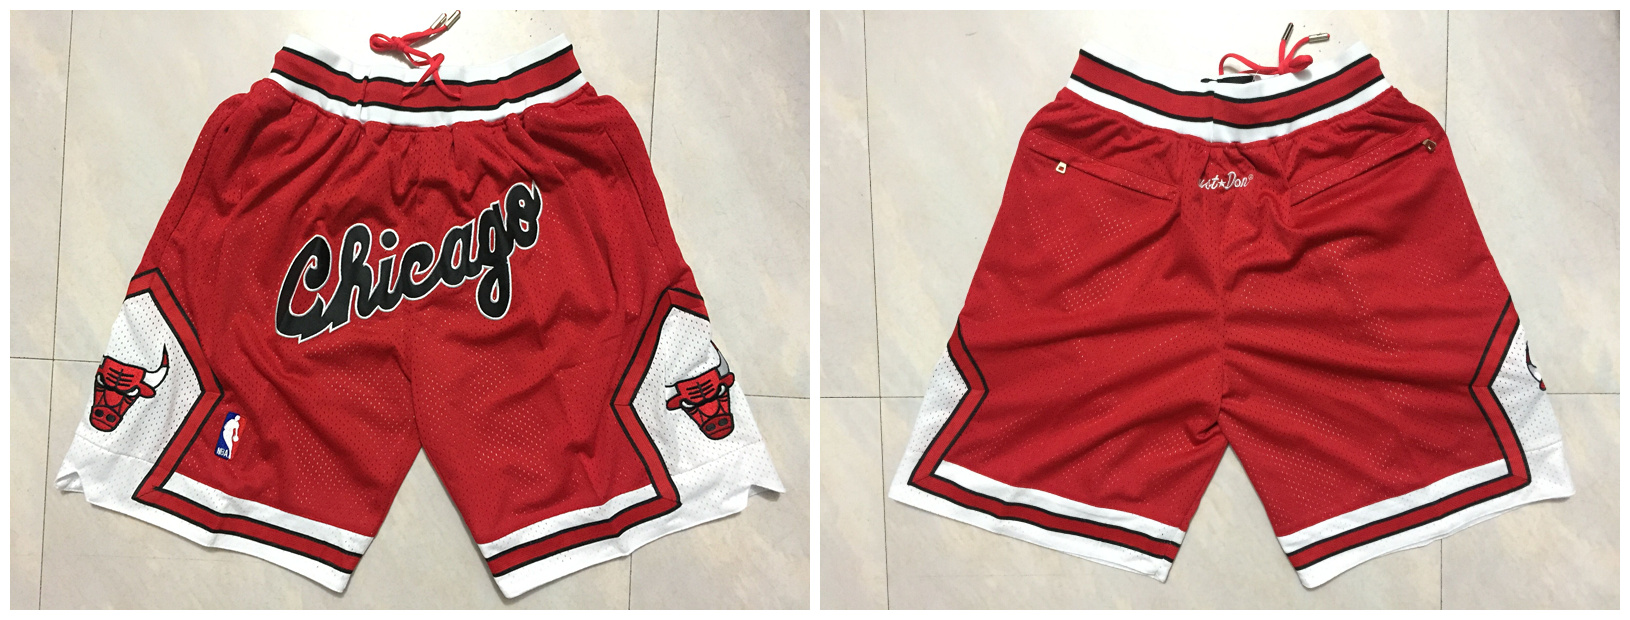 Bulls Red 1997-98 Throwback Shorts